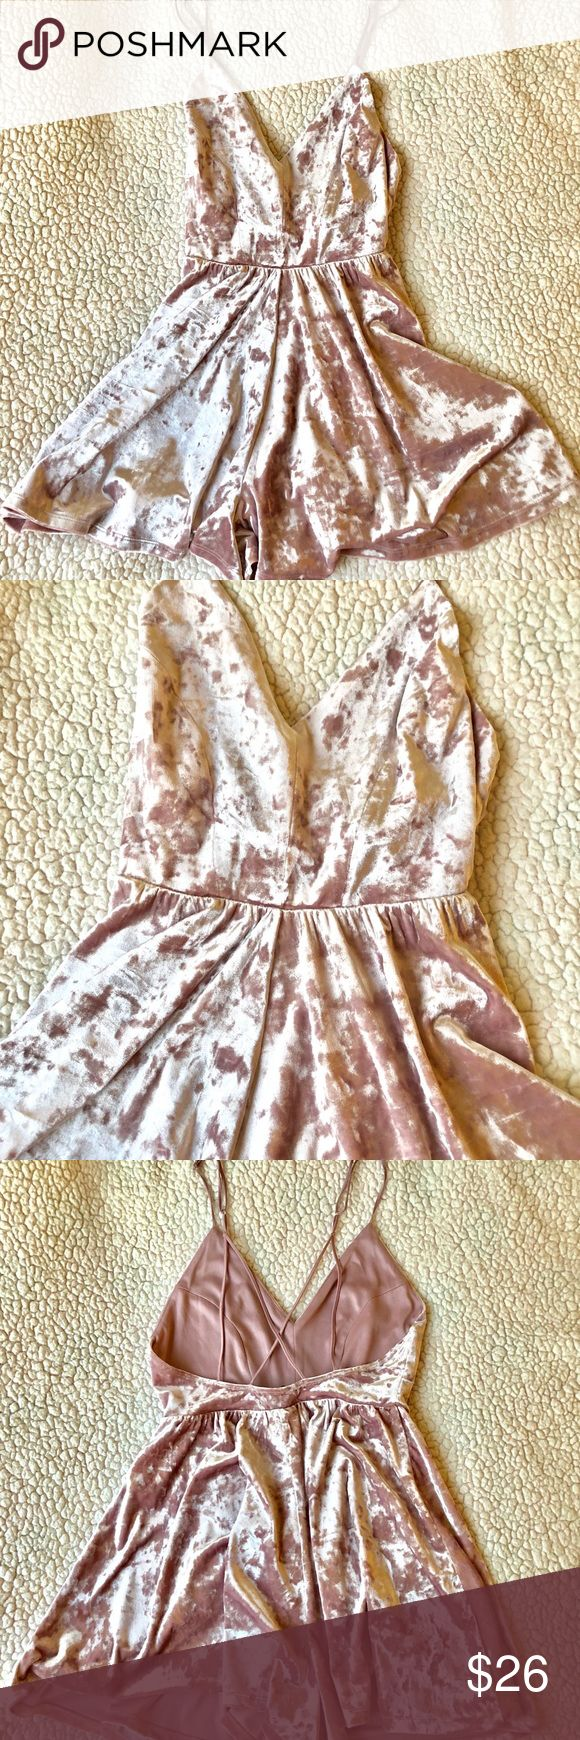 Velour shorts jumpsuit • Velour shorts jumpsuit from Forever 21 • BRAND NEW • In perfect condition  • No trades • Offers are always welcome  • Bundle 2 or more items for 10% off your entire purchase Forever 21 Other